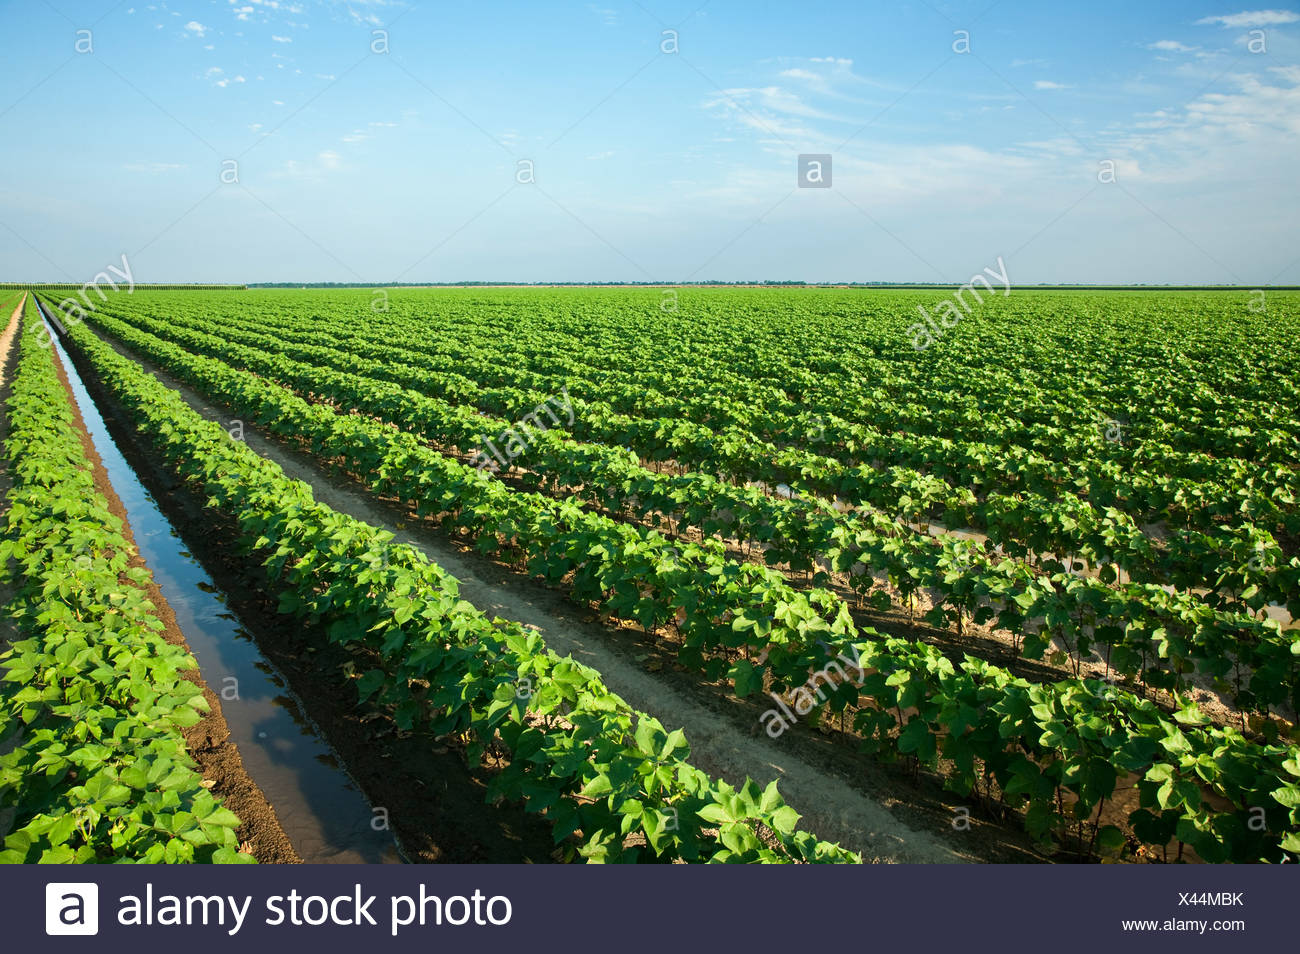 Agriculture - Large field of mid growth cotton being furrow irrigated / near England, Arkansas, USA. - Stock Image